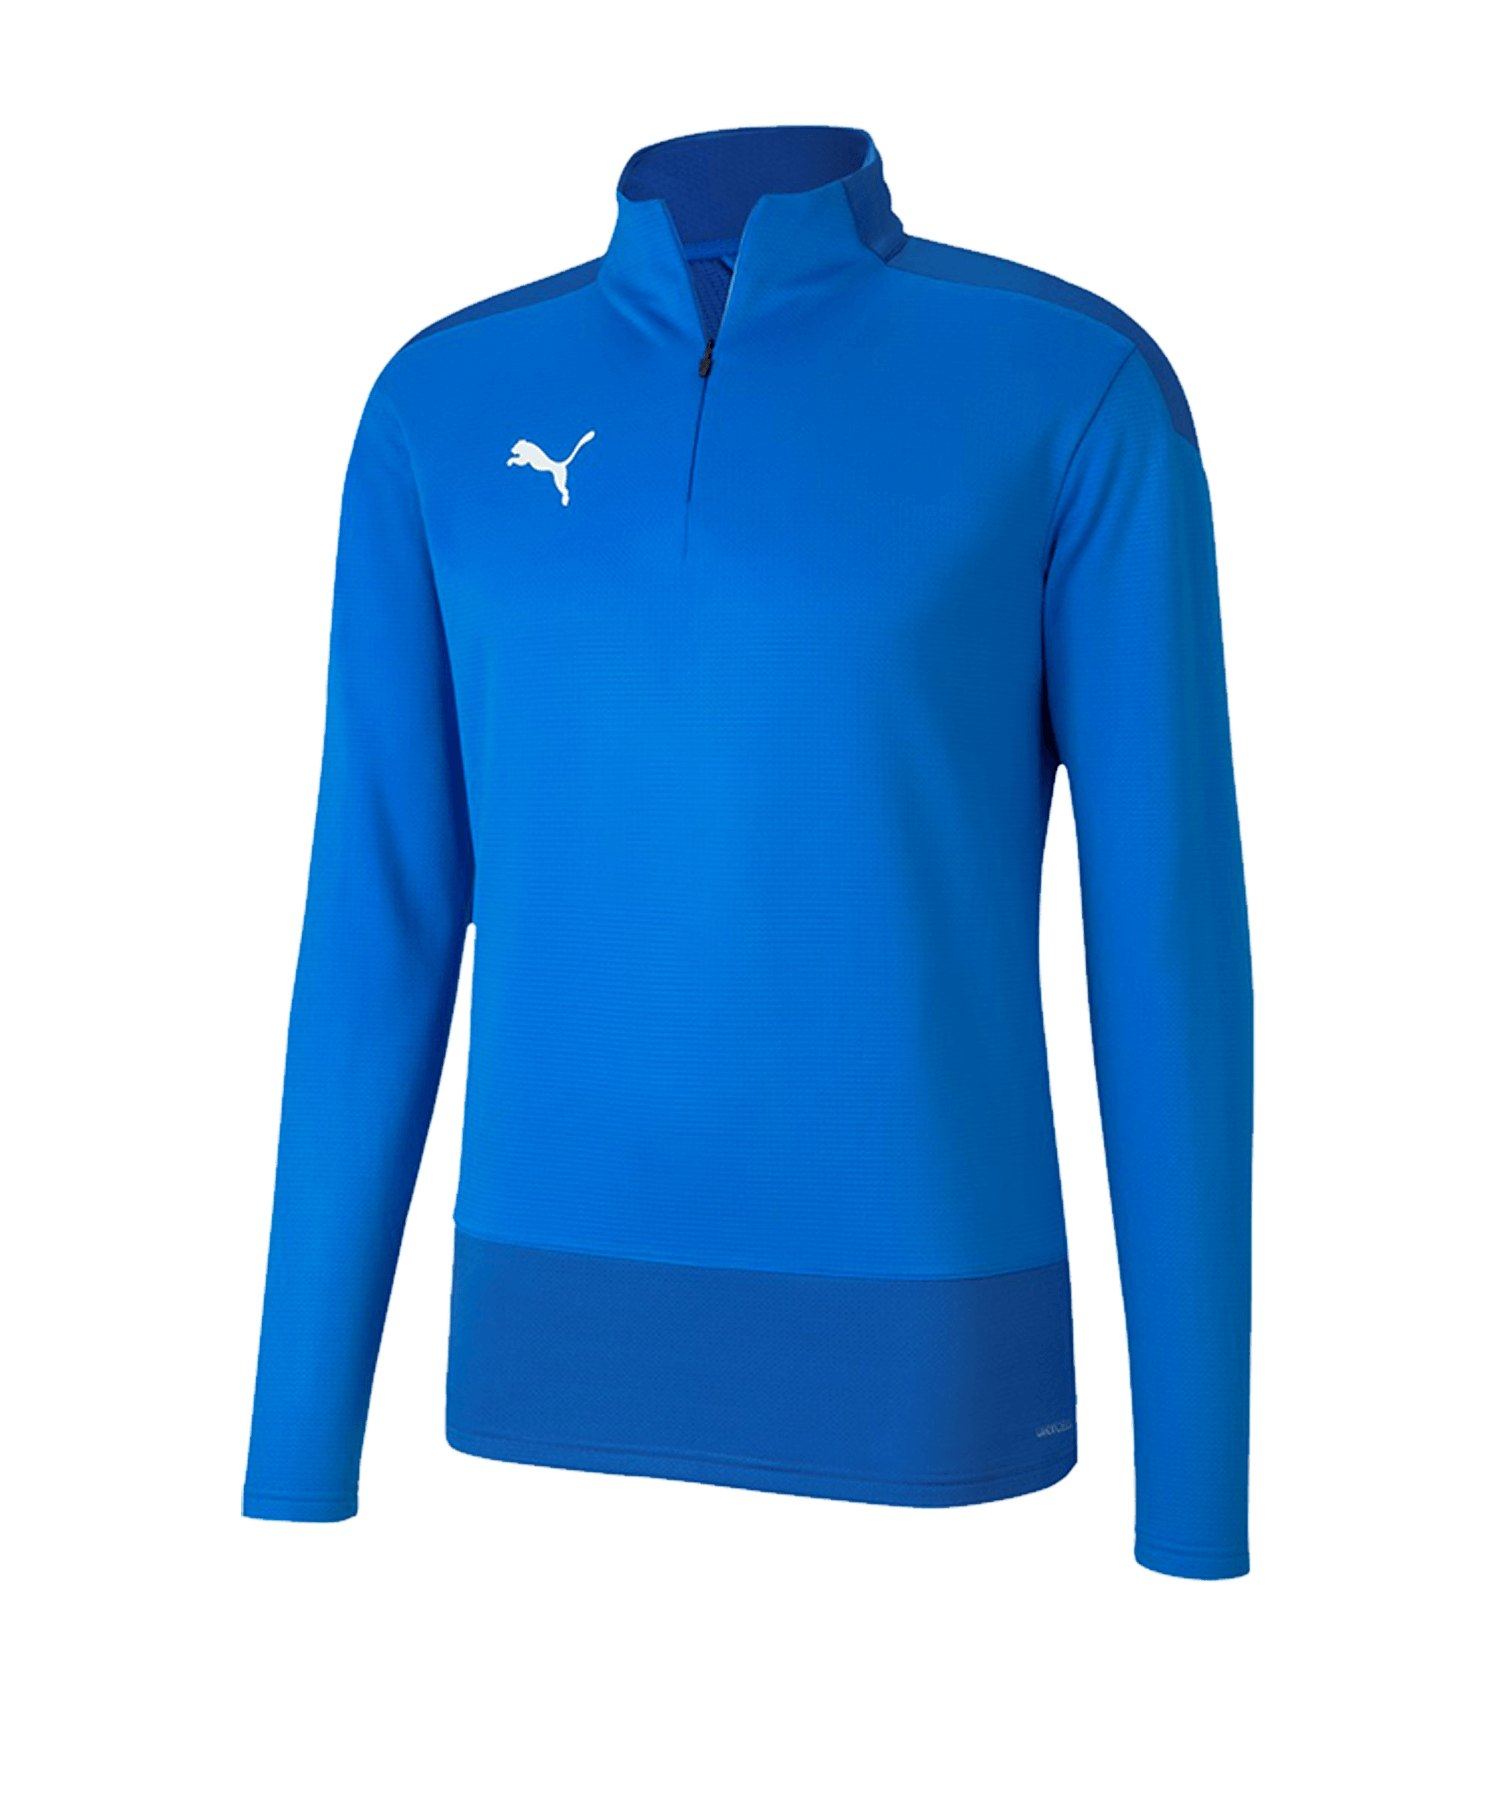 PUMA teamGOAL 23 Training 1/4 Zip Top Blau F02 - blau